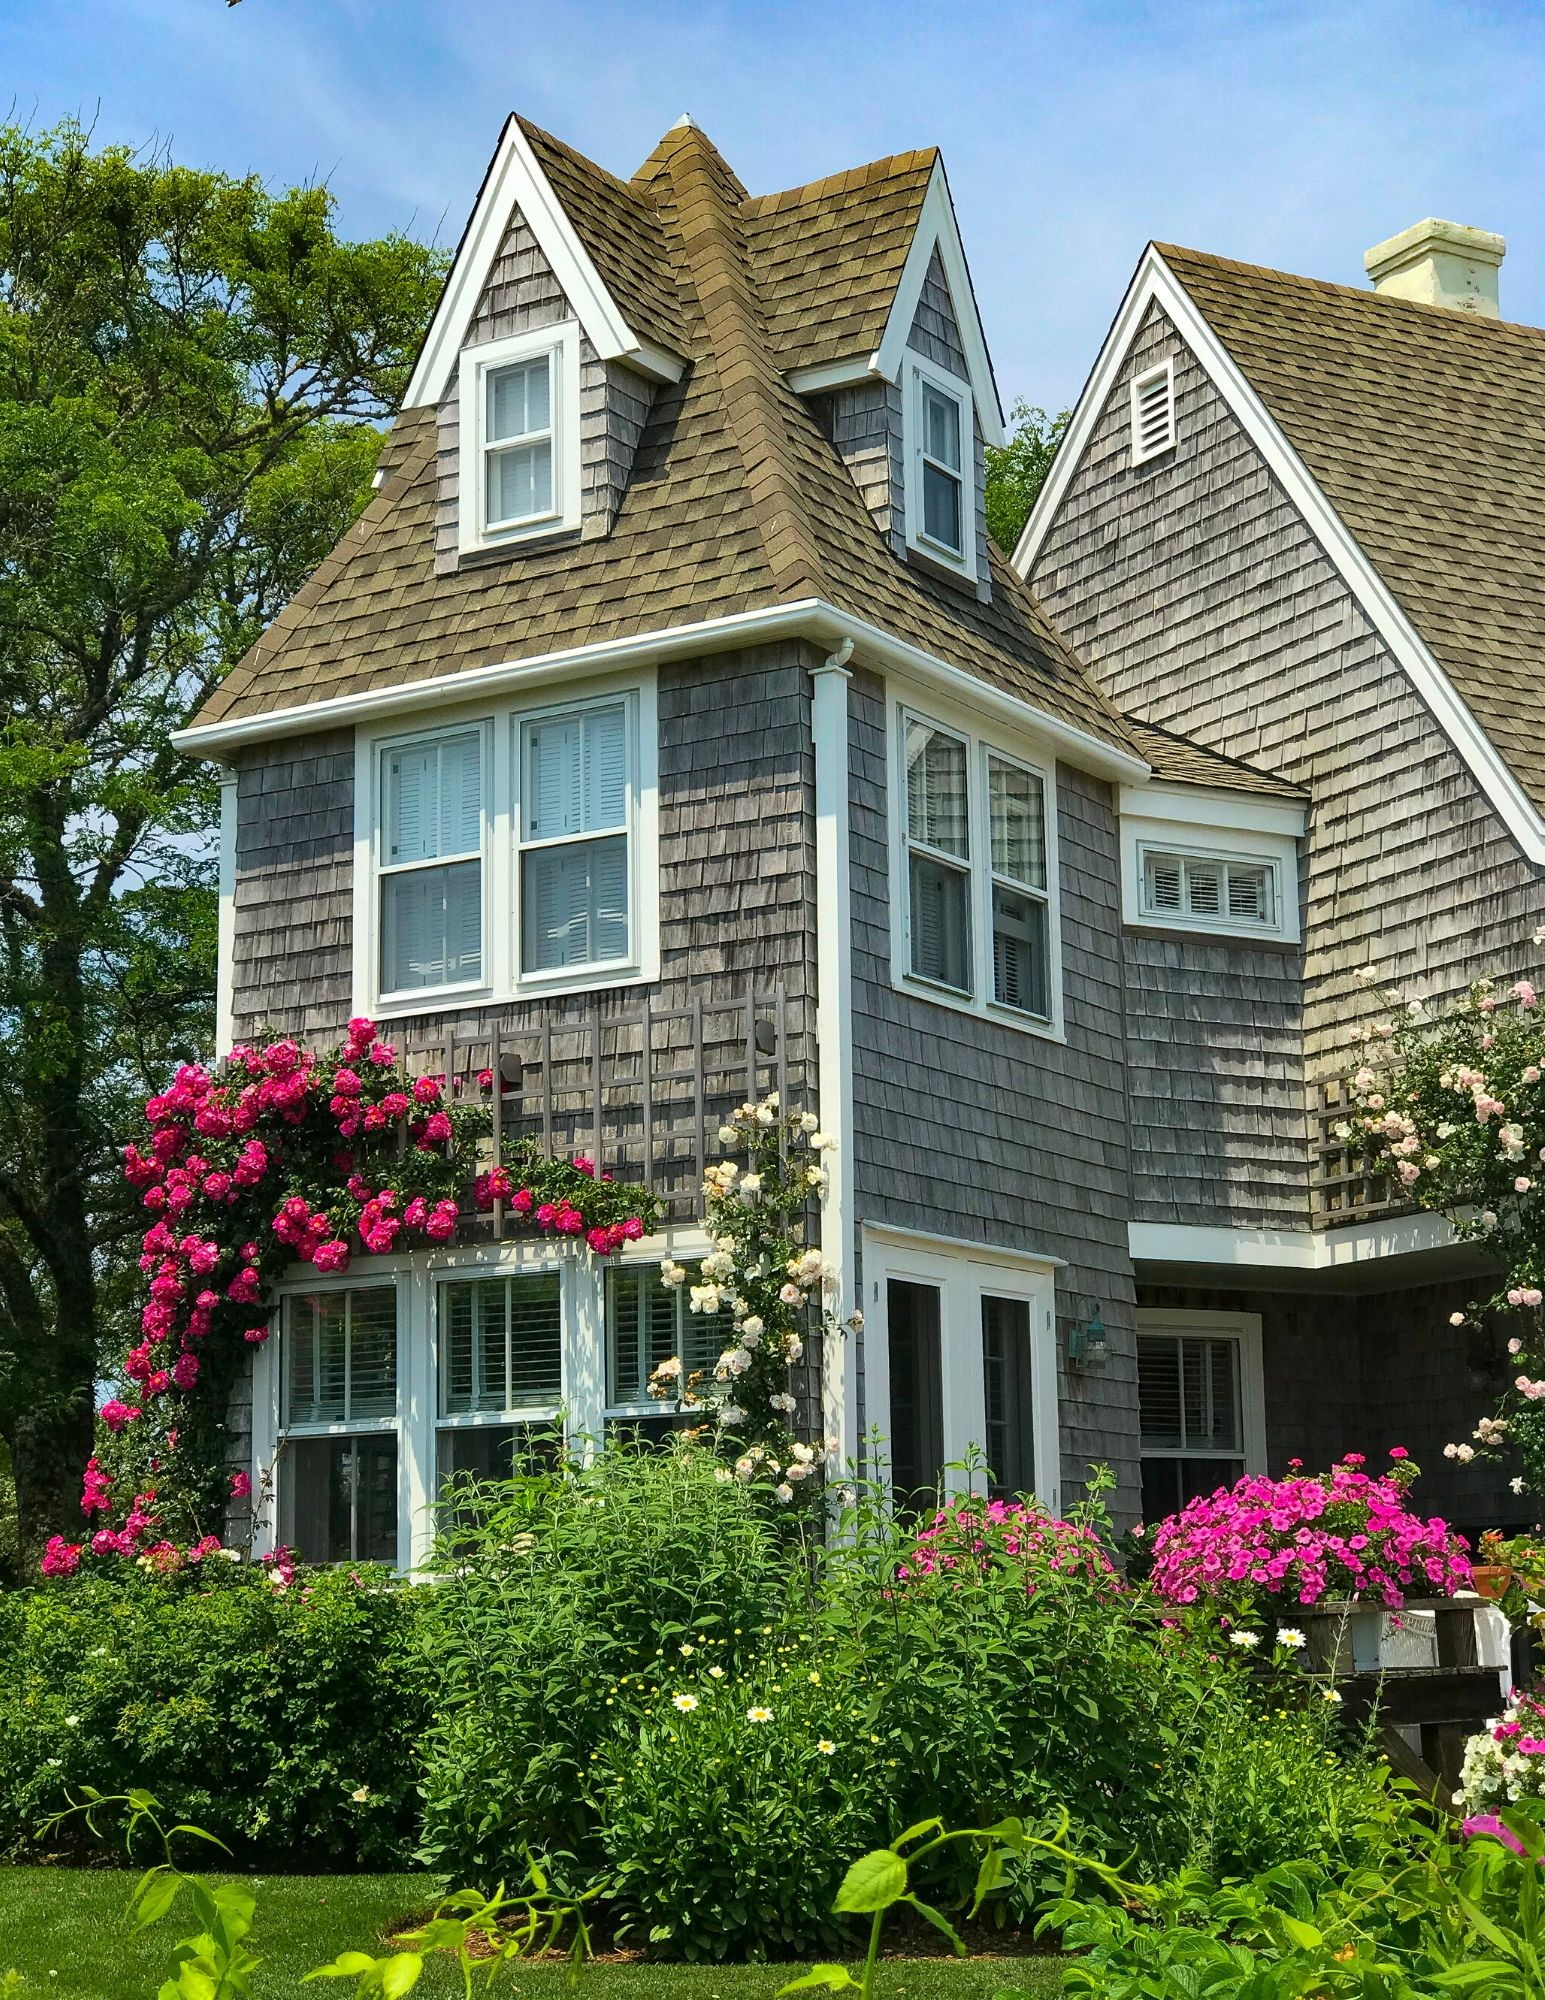 Nantucket Rose Covered Cottages in Sconset-9